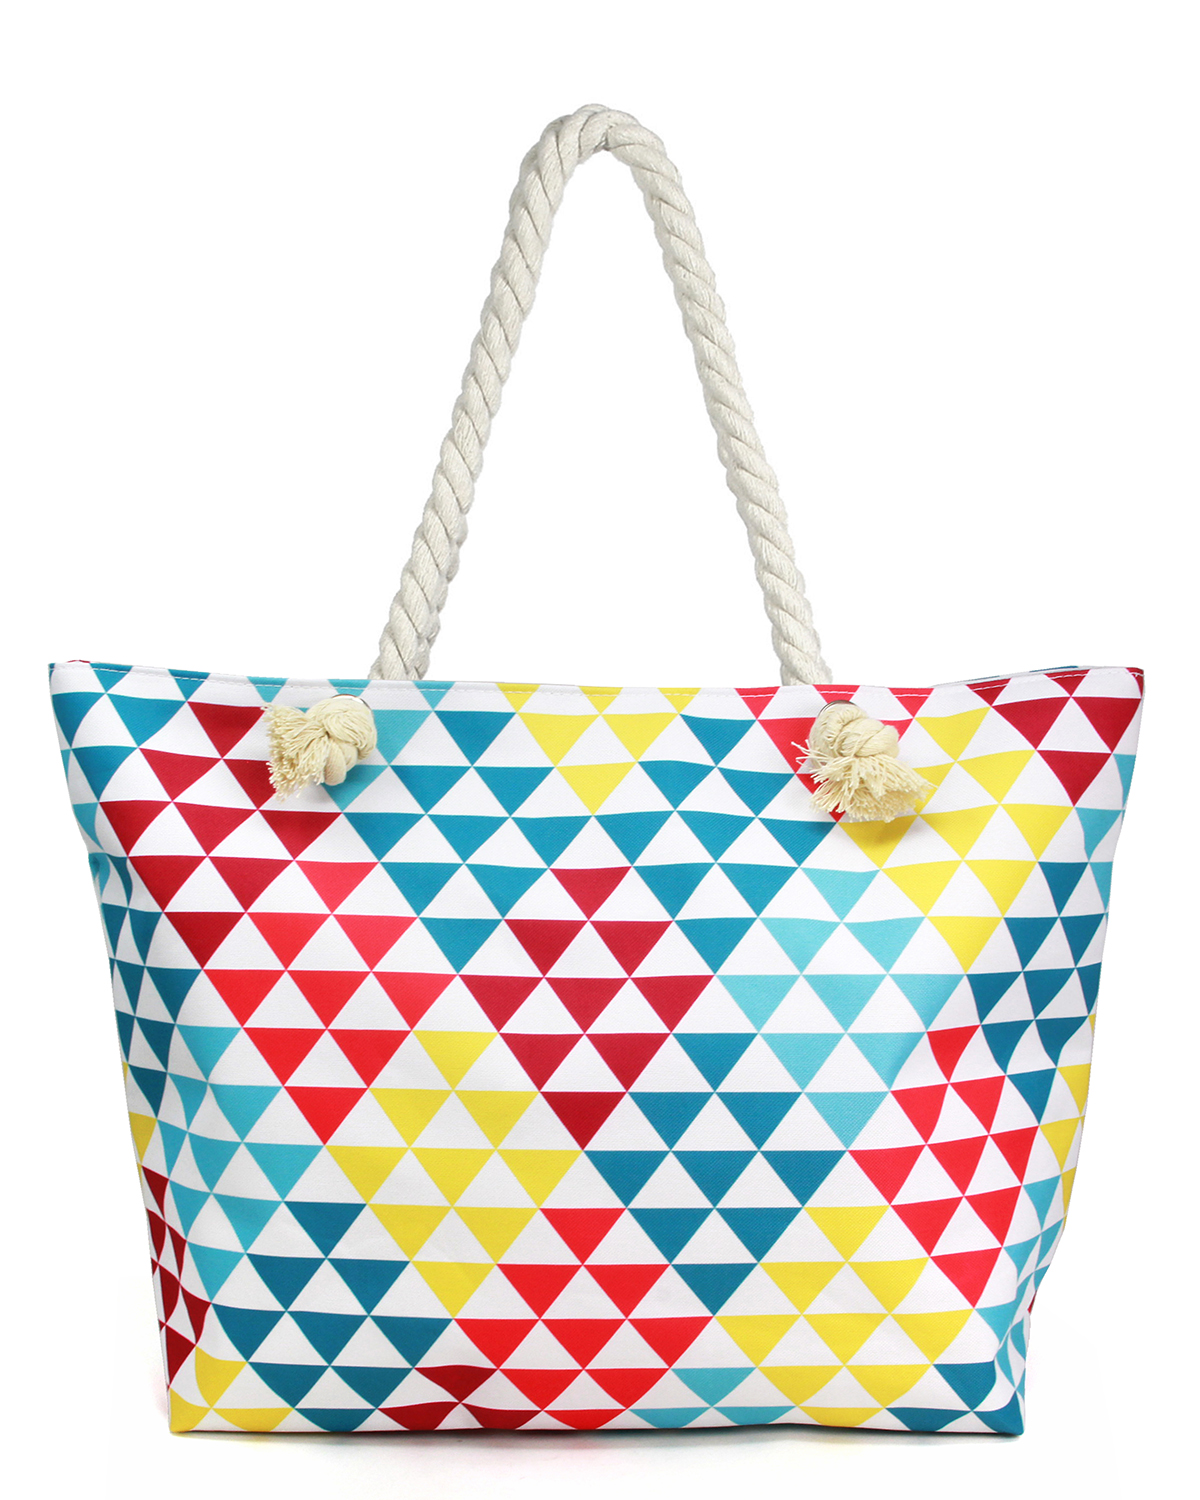 LOA316-wholesale-tote-bag-Colorful-Triangle-print-Inside-wall-pocket-polyester-cotton(0).jpg